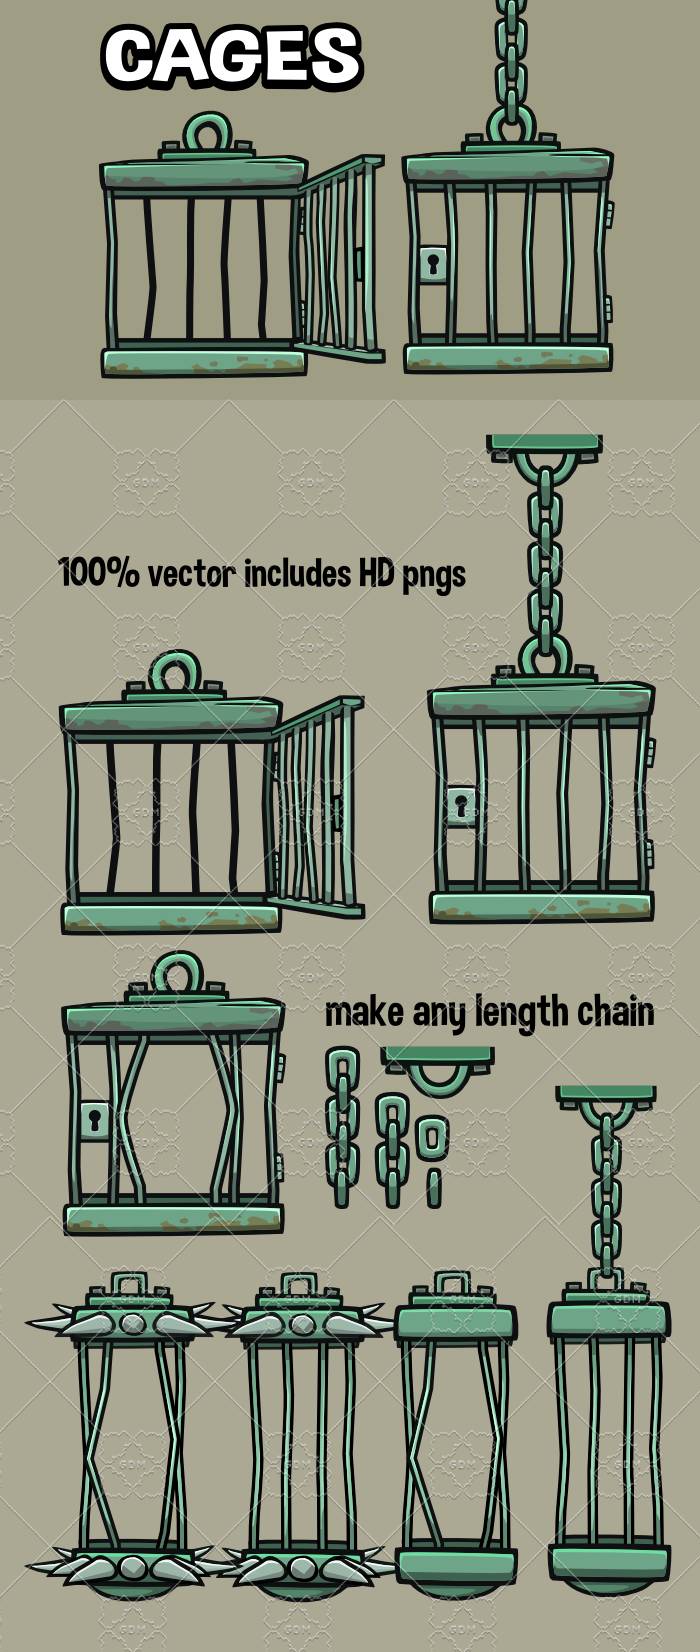 Cages game assets